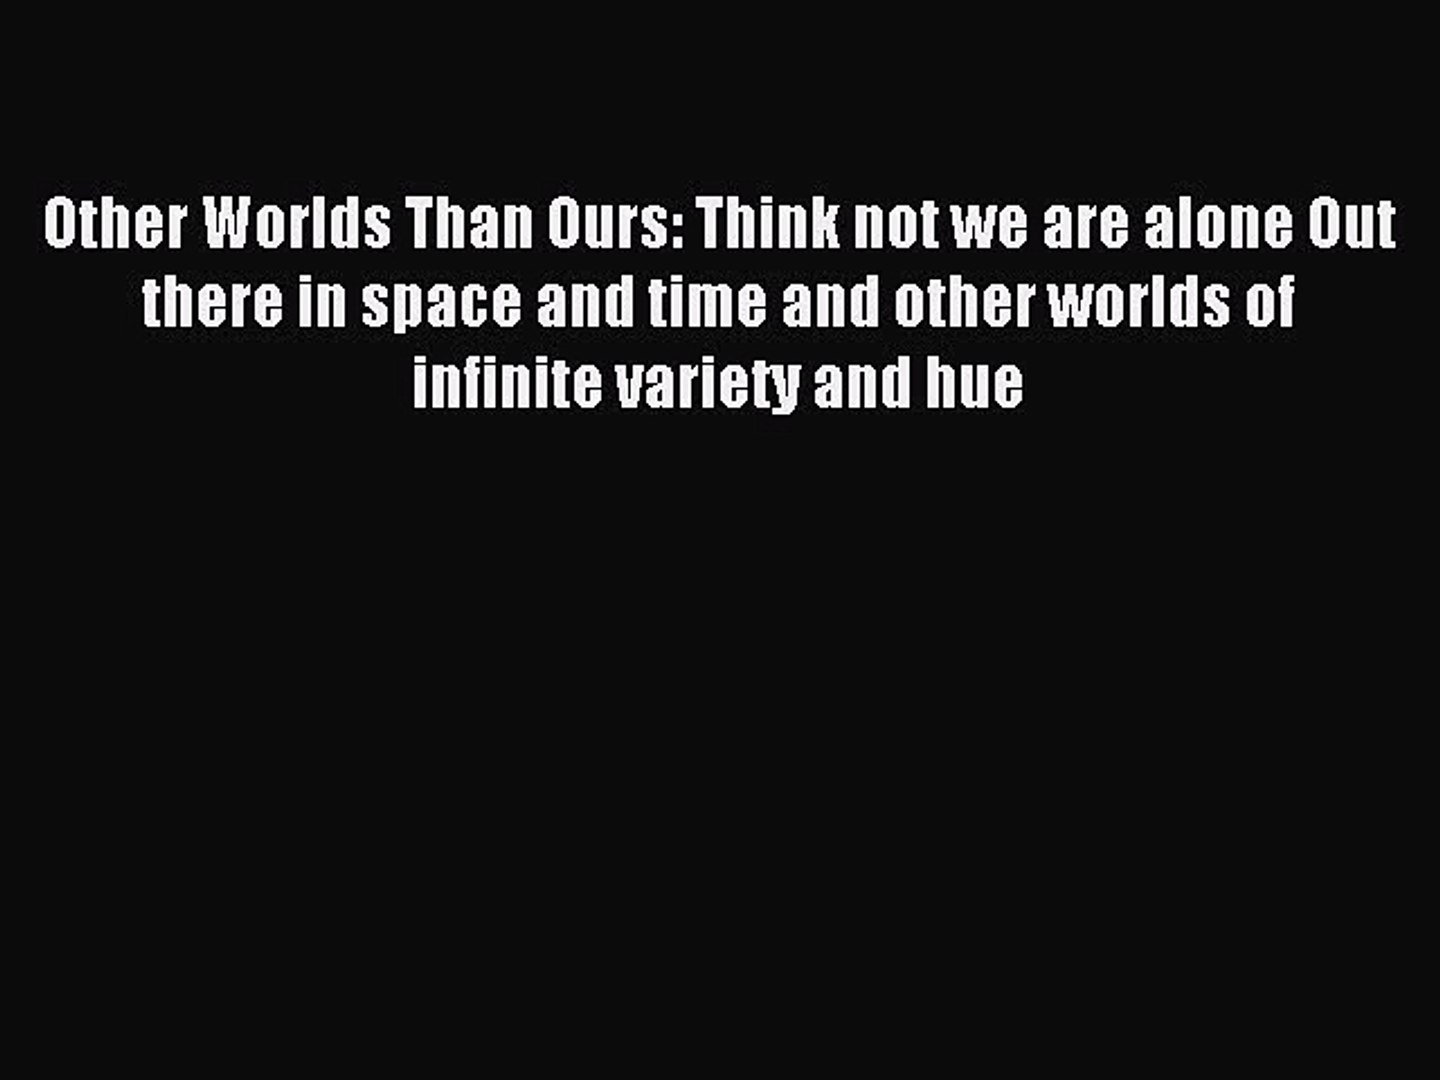 Download Other Worlds Than Ours: Think not we are alone Out there in space and time and other